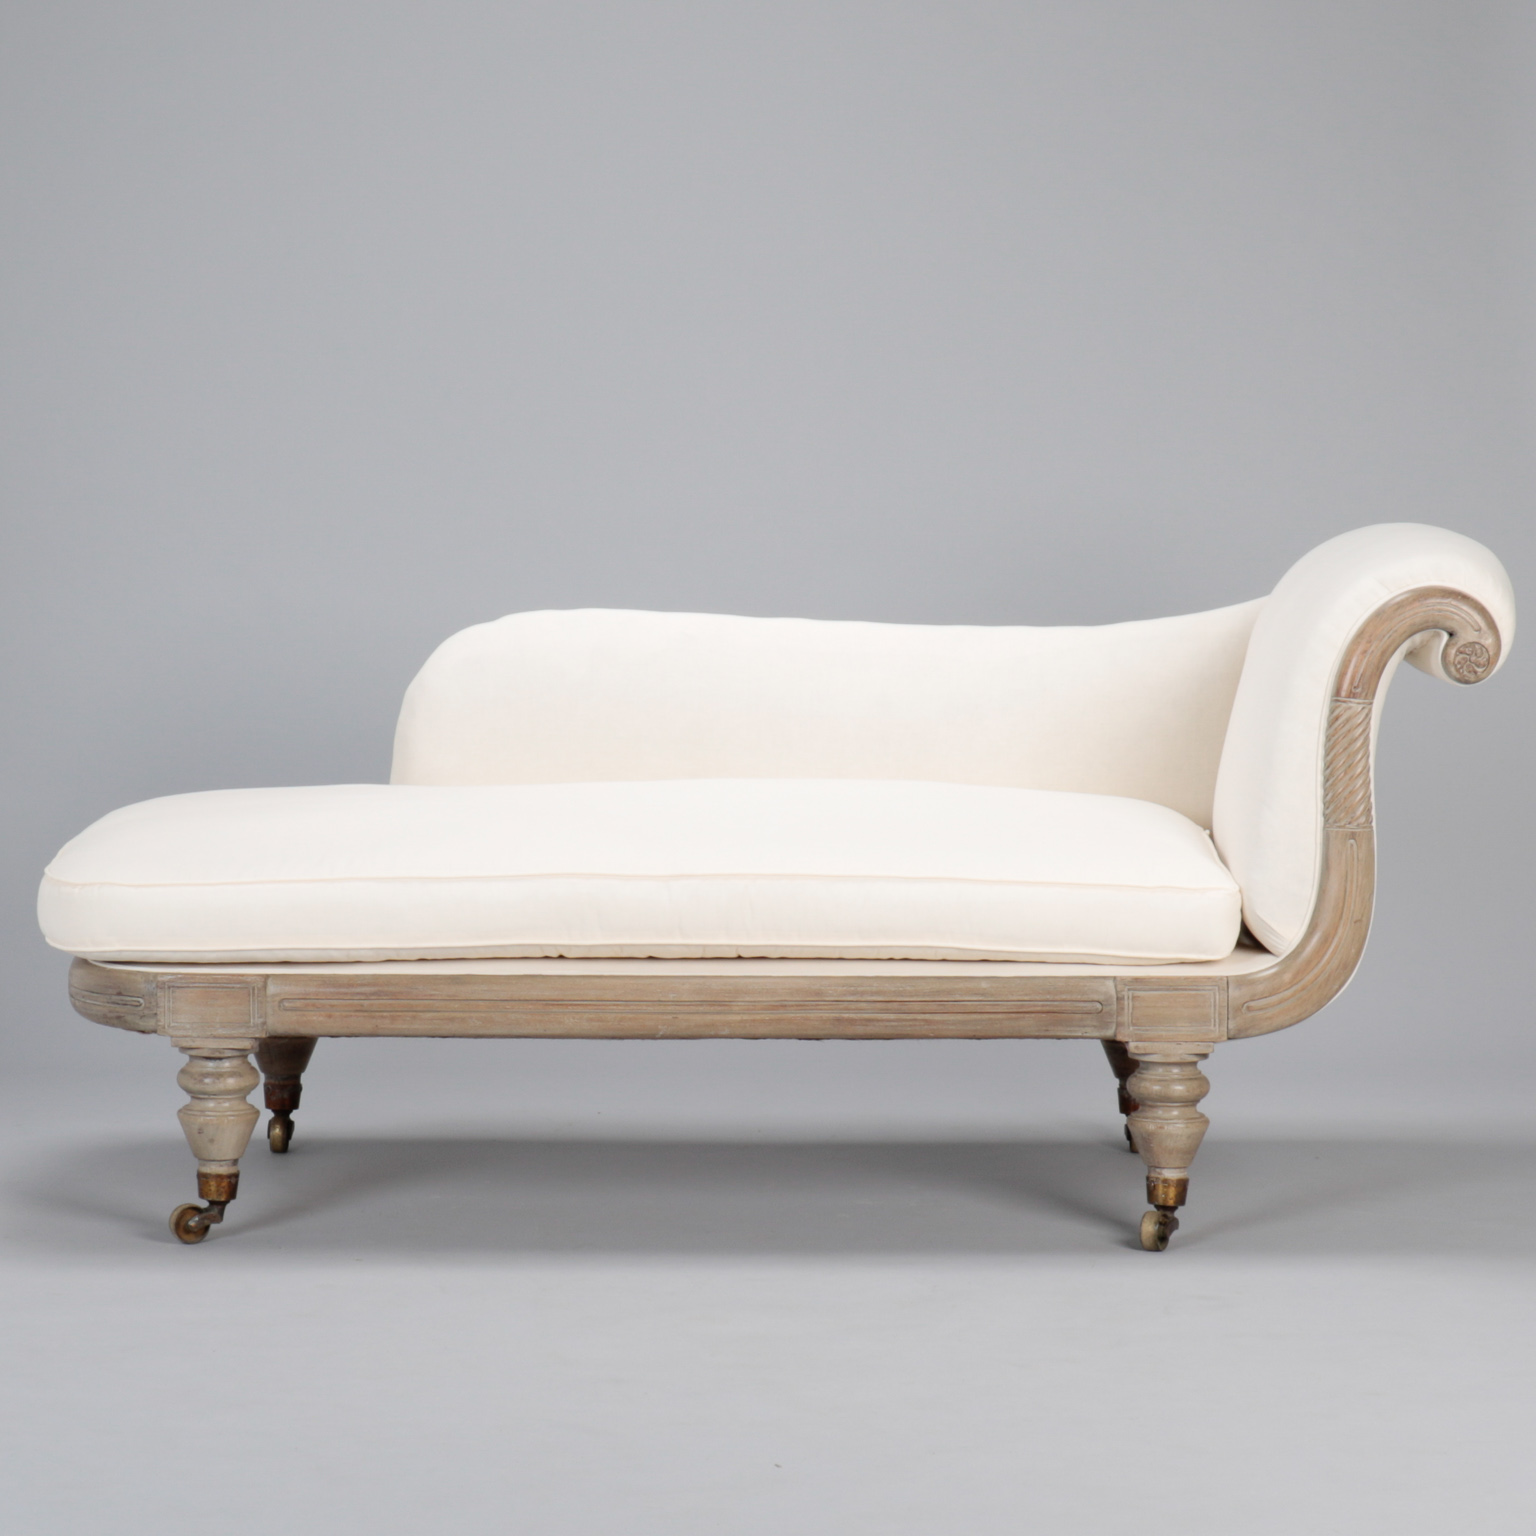 French Chaise French Chaise Lounge With Bleached Wood Frame Item 7742